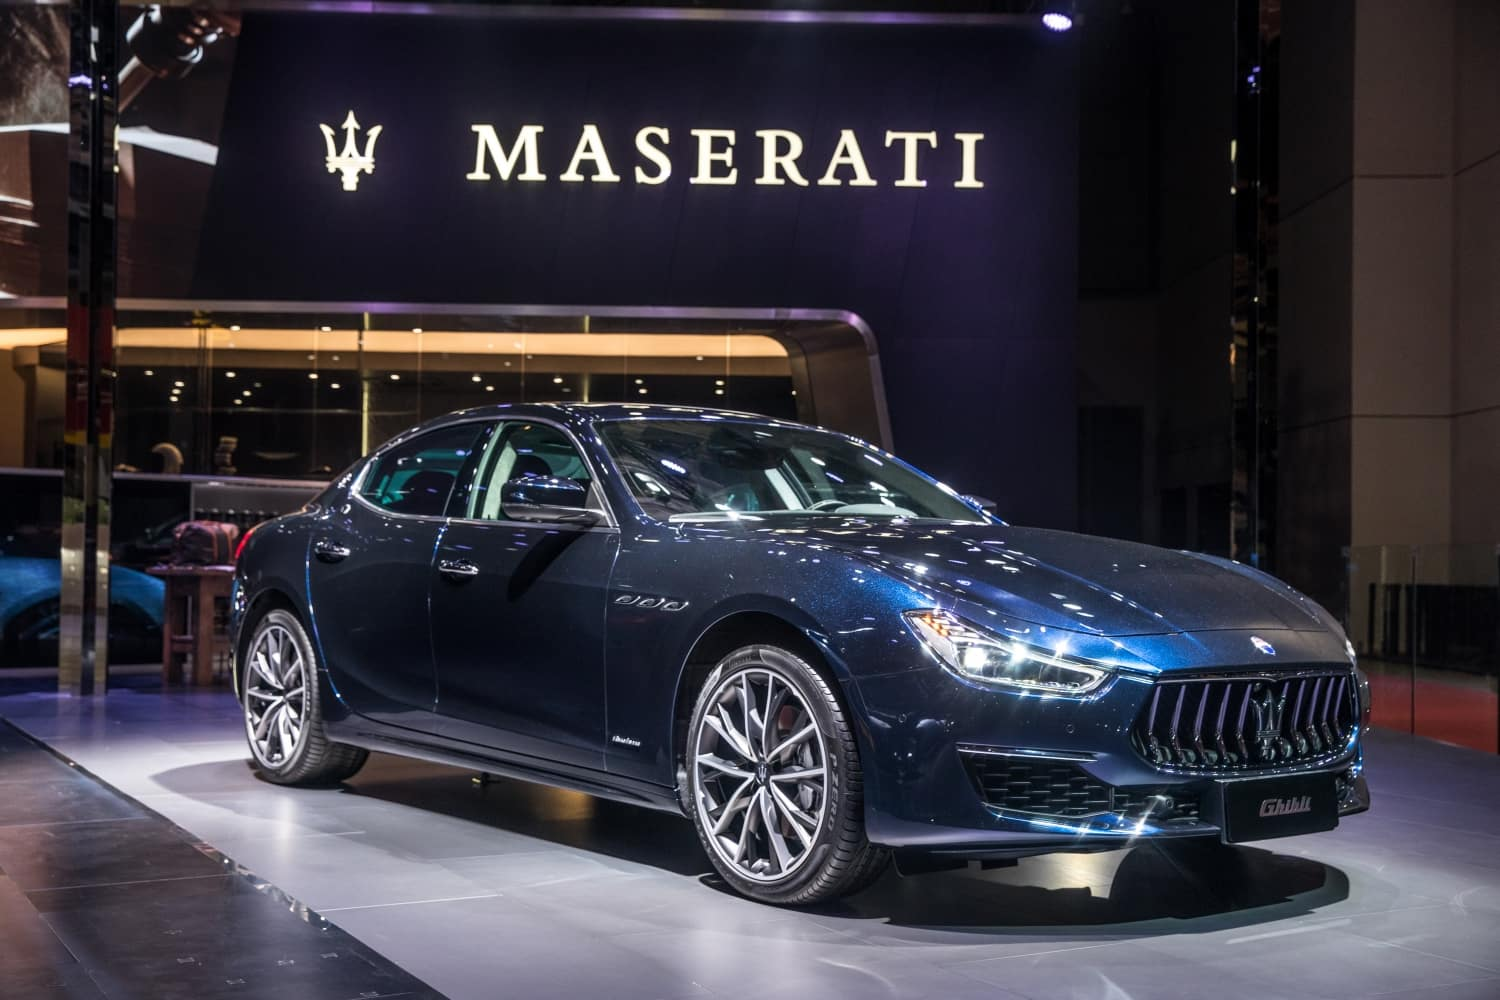 2019 Maserati Quattroporte Models And Specs Maserati Of